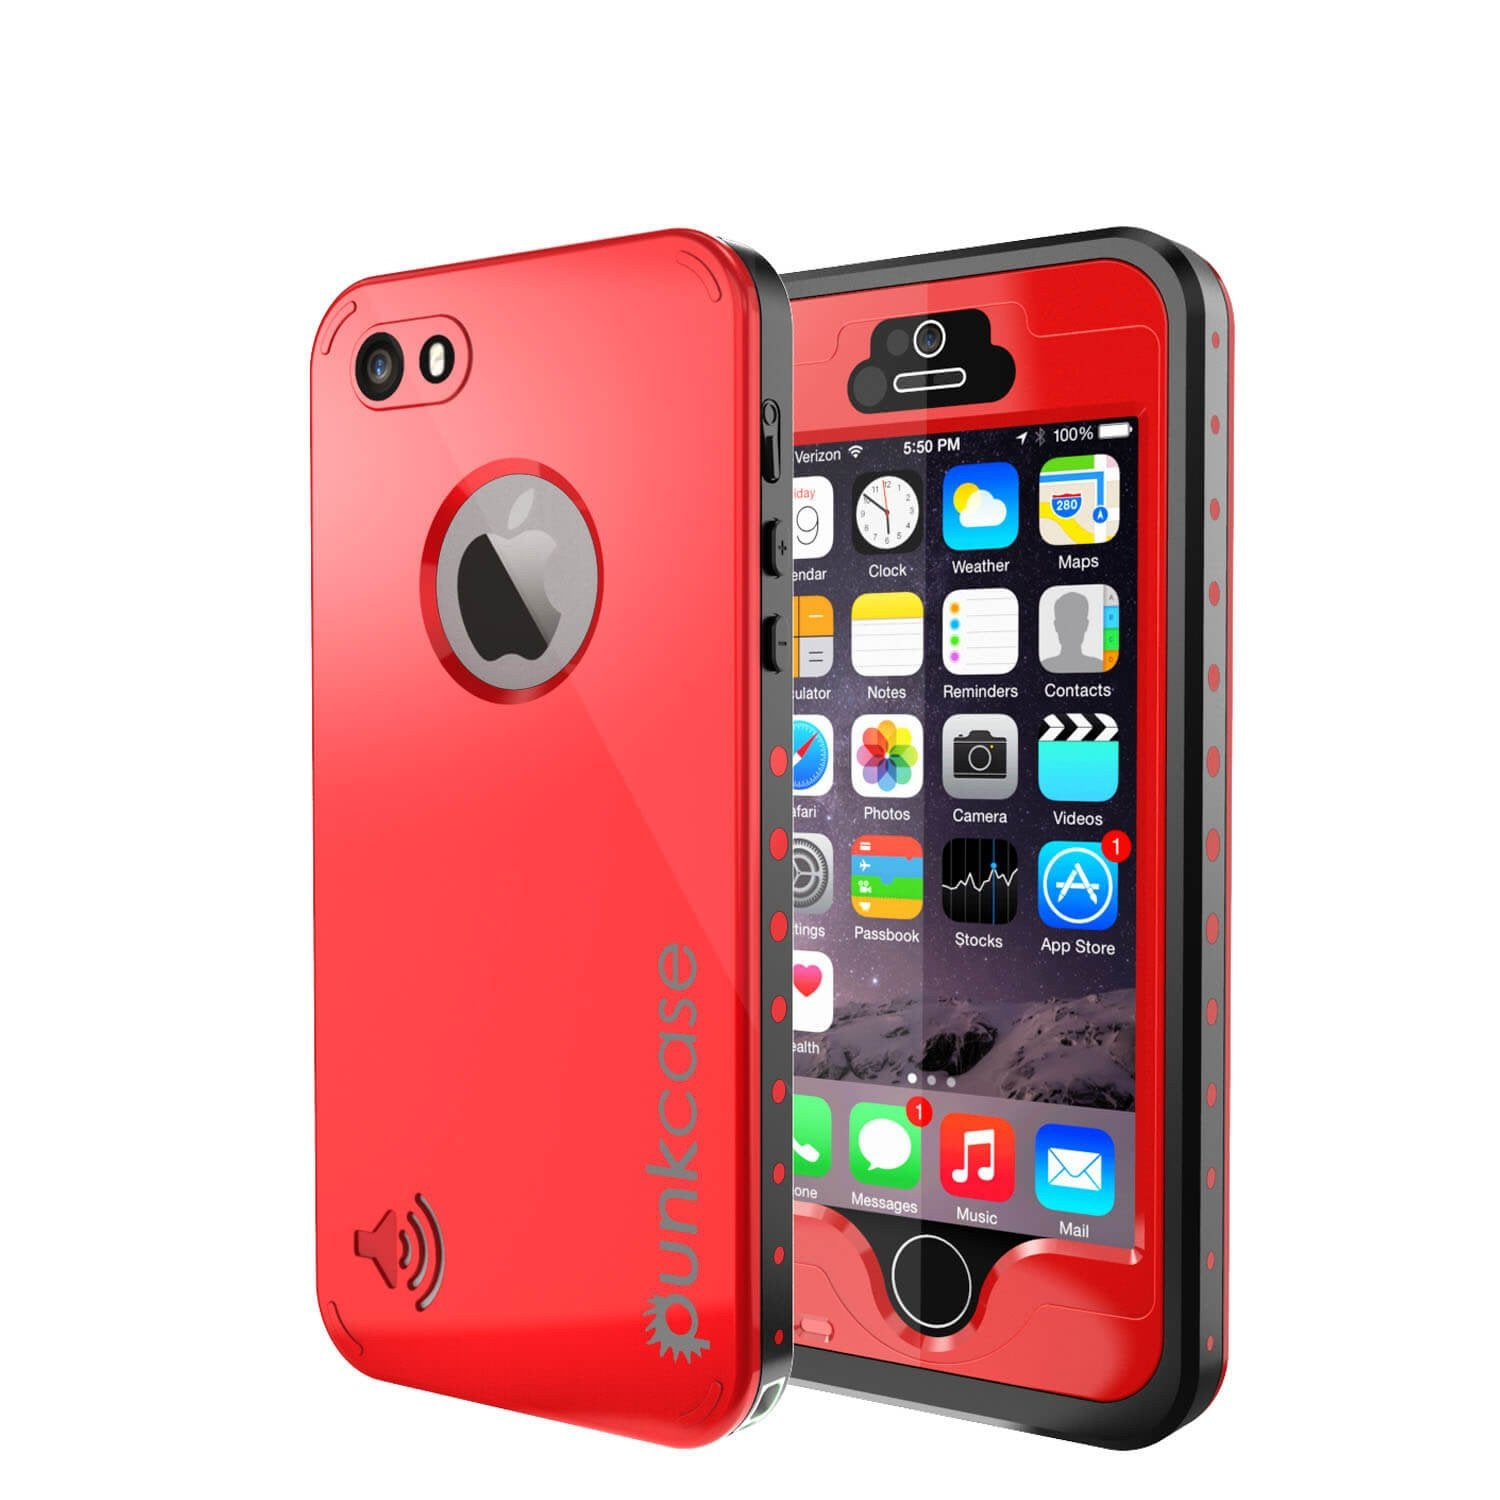 iPhone 5S/5 Waterproof Case, PunkCase StudStar Red Case Water/Shock/Dirt Proof | Lifetime Warranty - PunkCase NZ